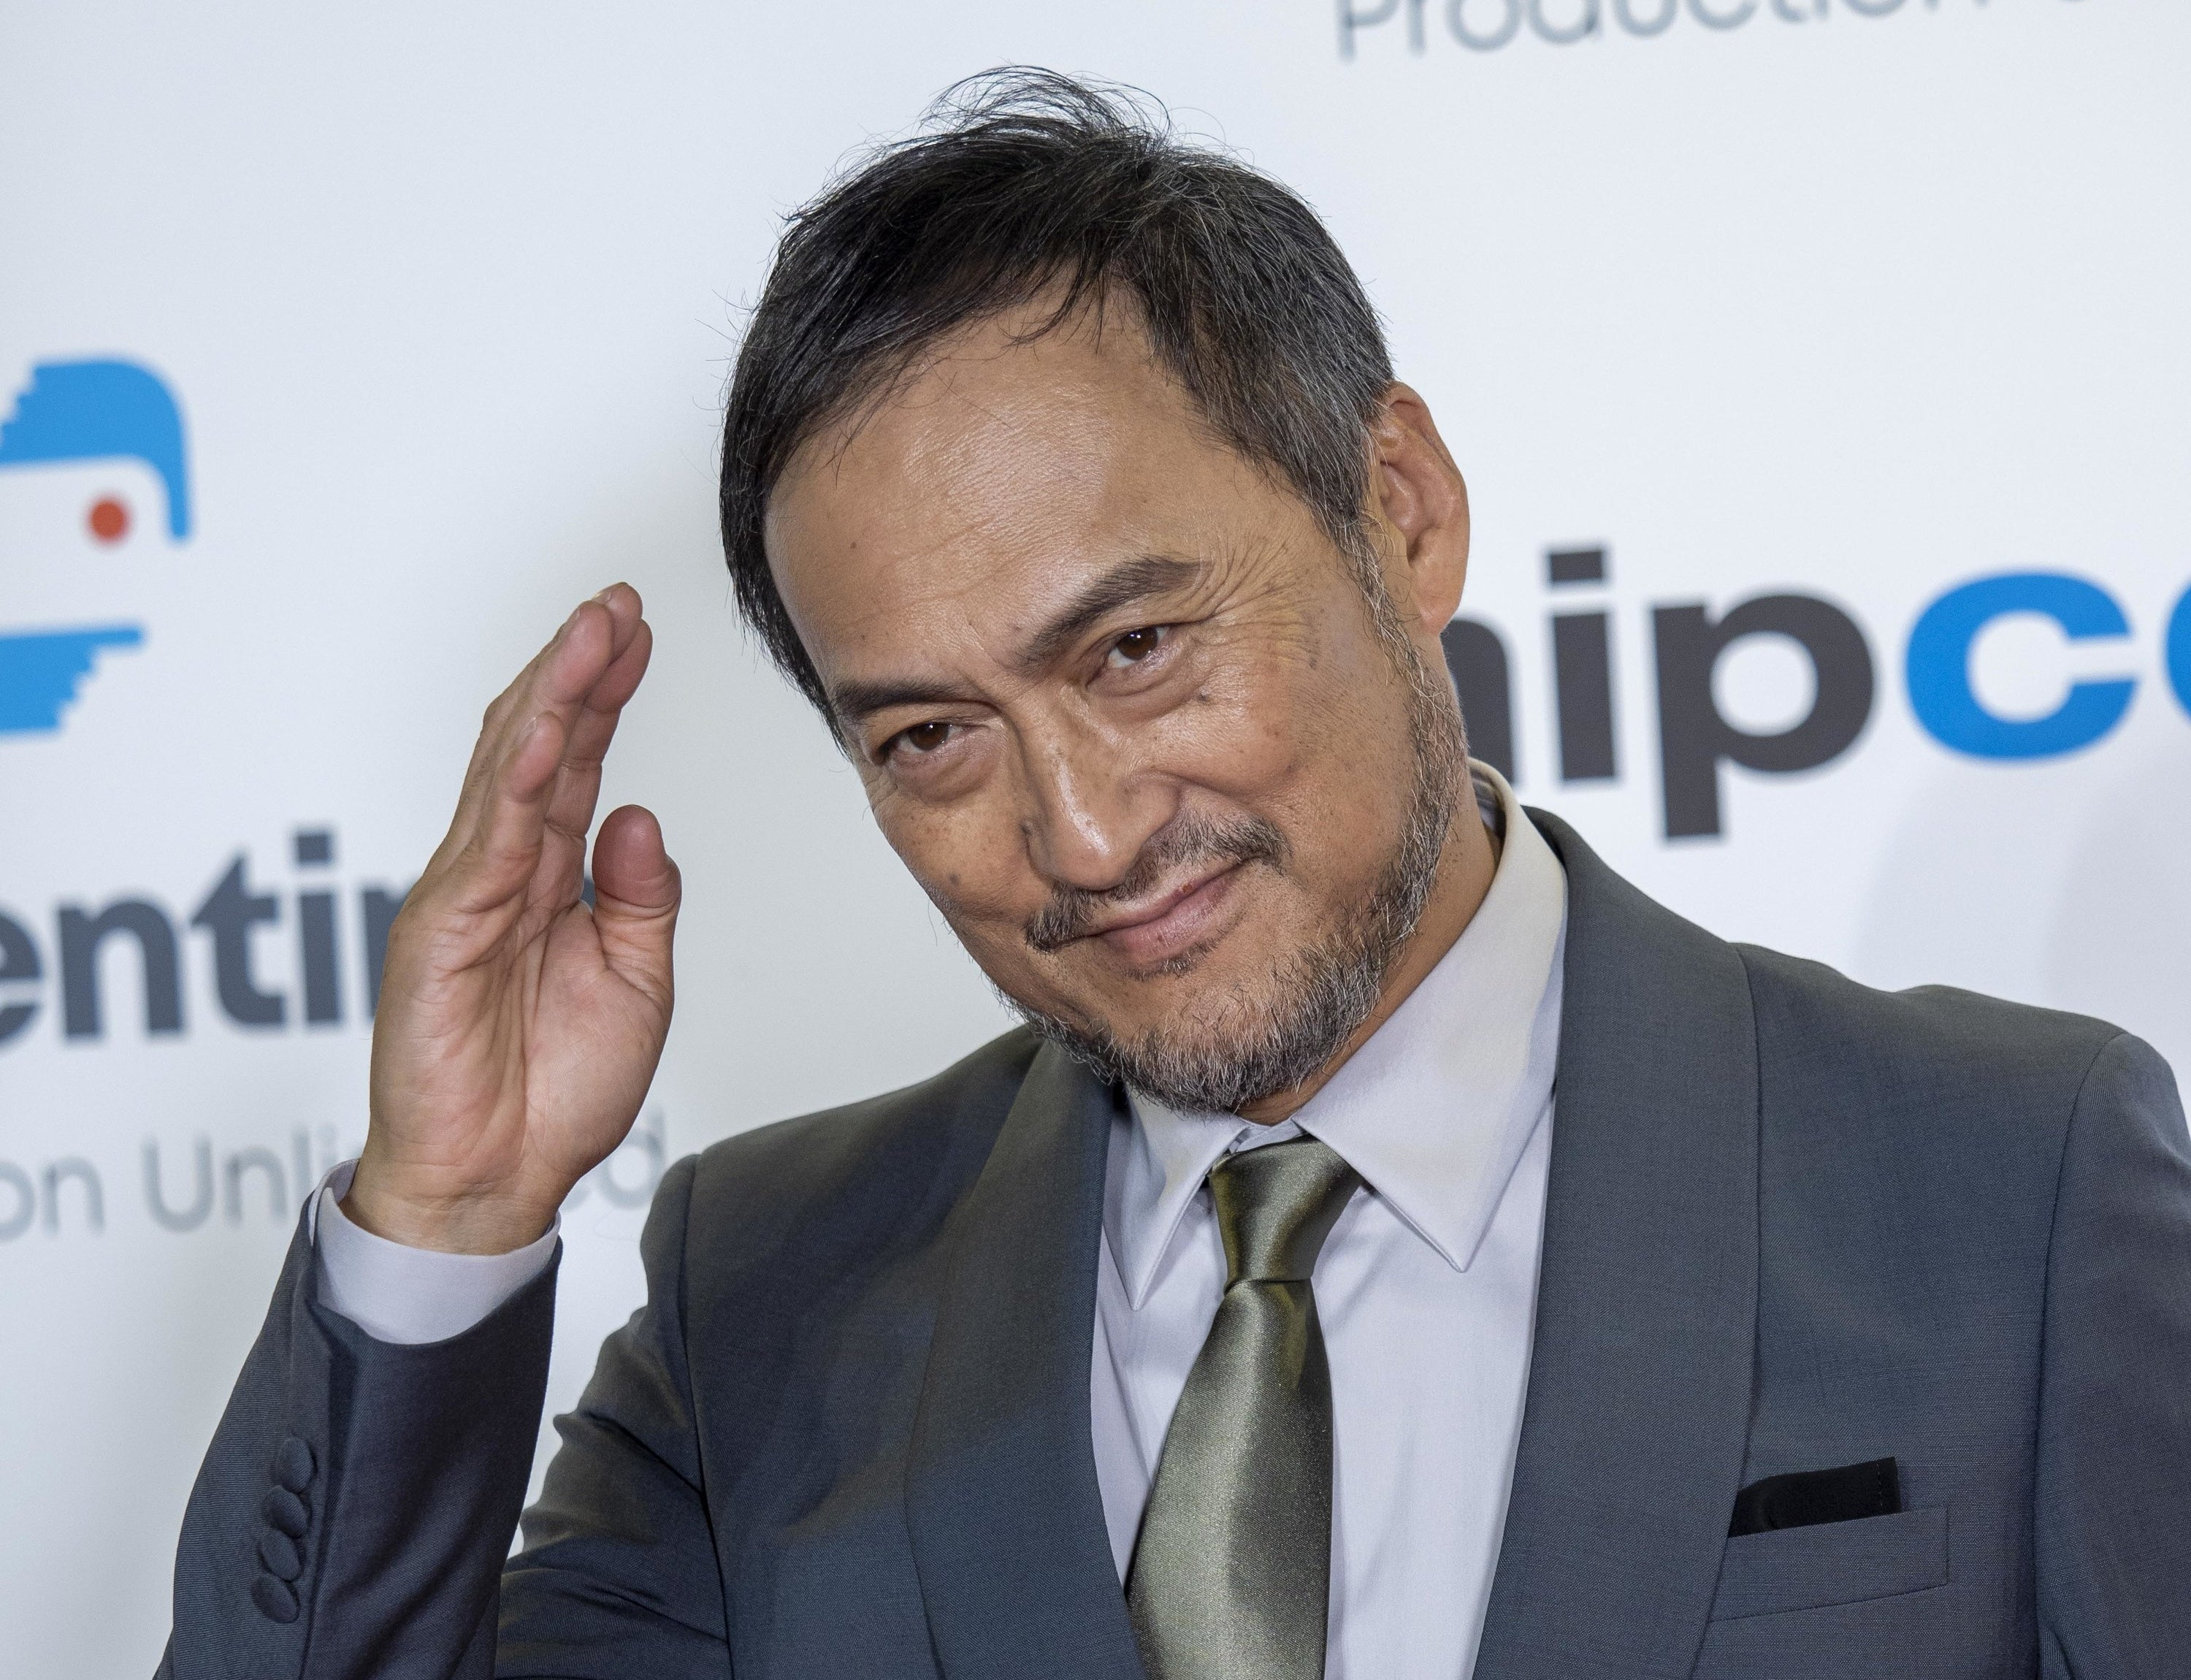 Ken Watanabe giving a salute on the red carpet